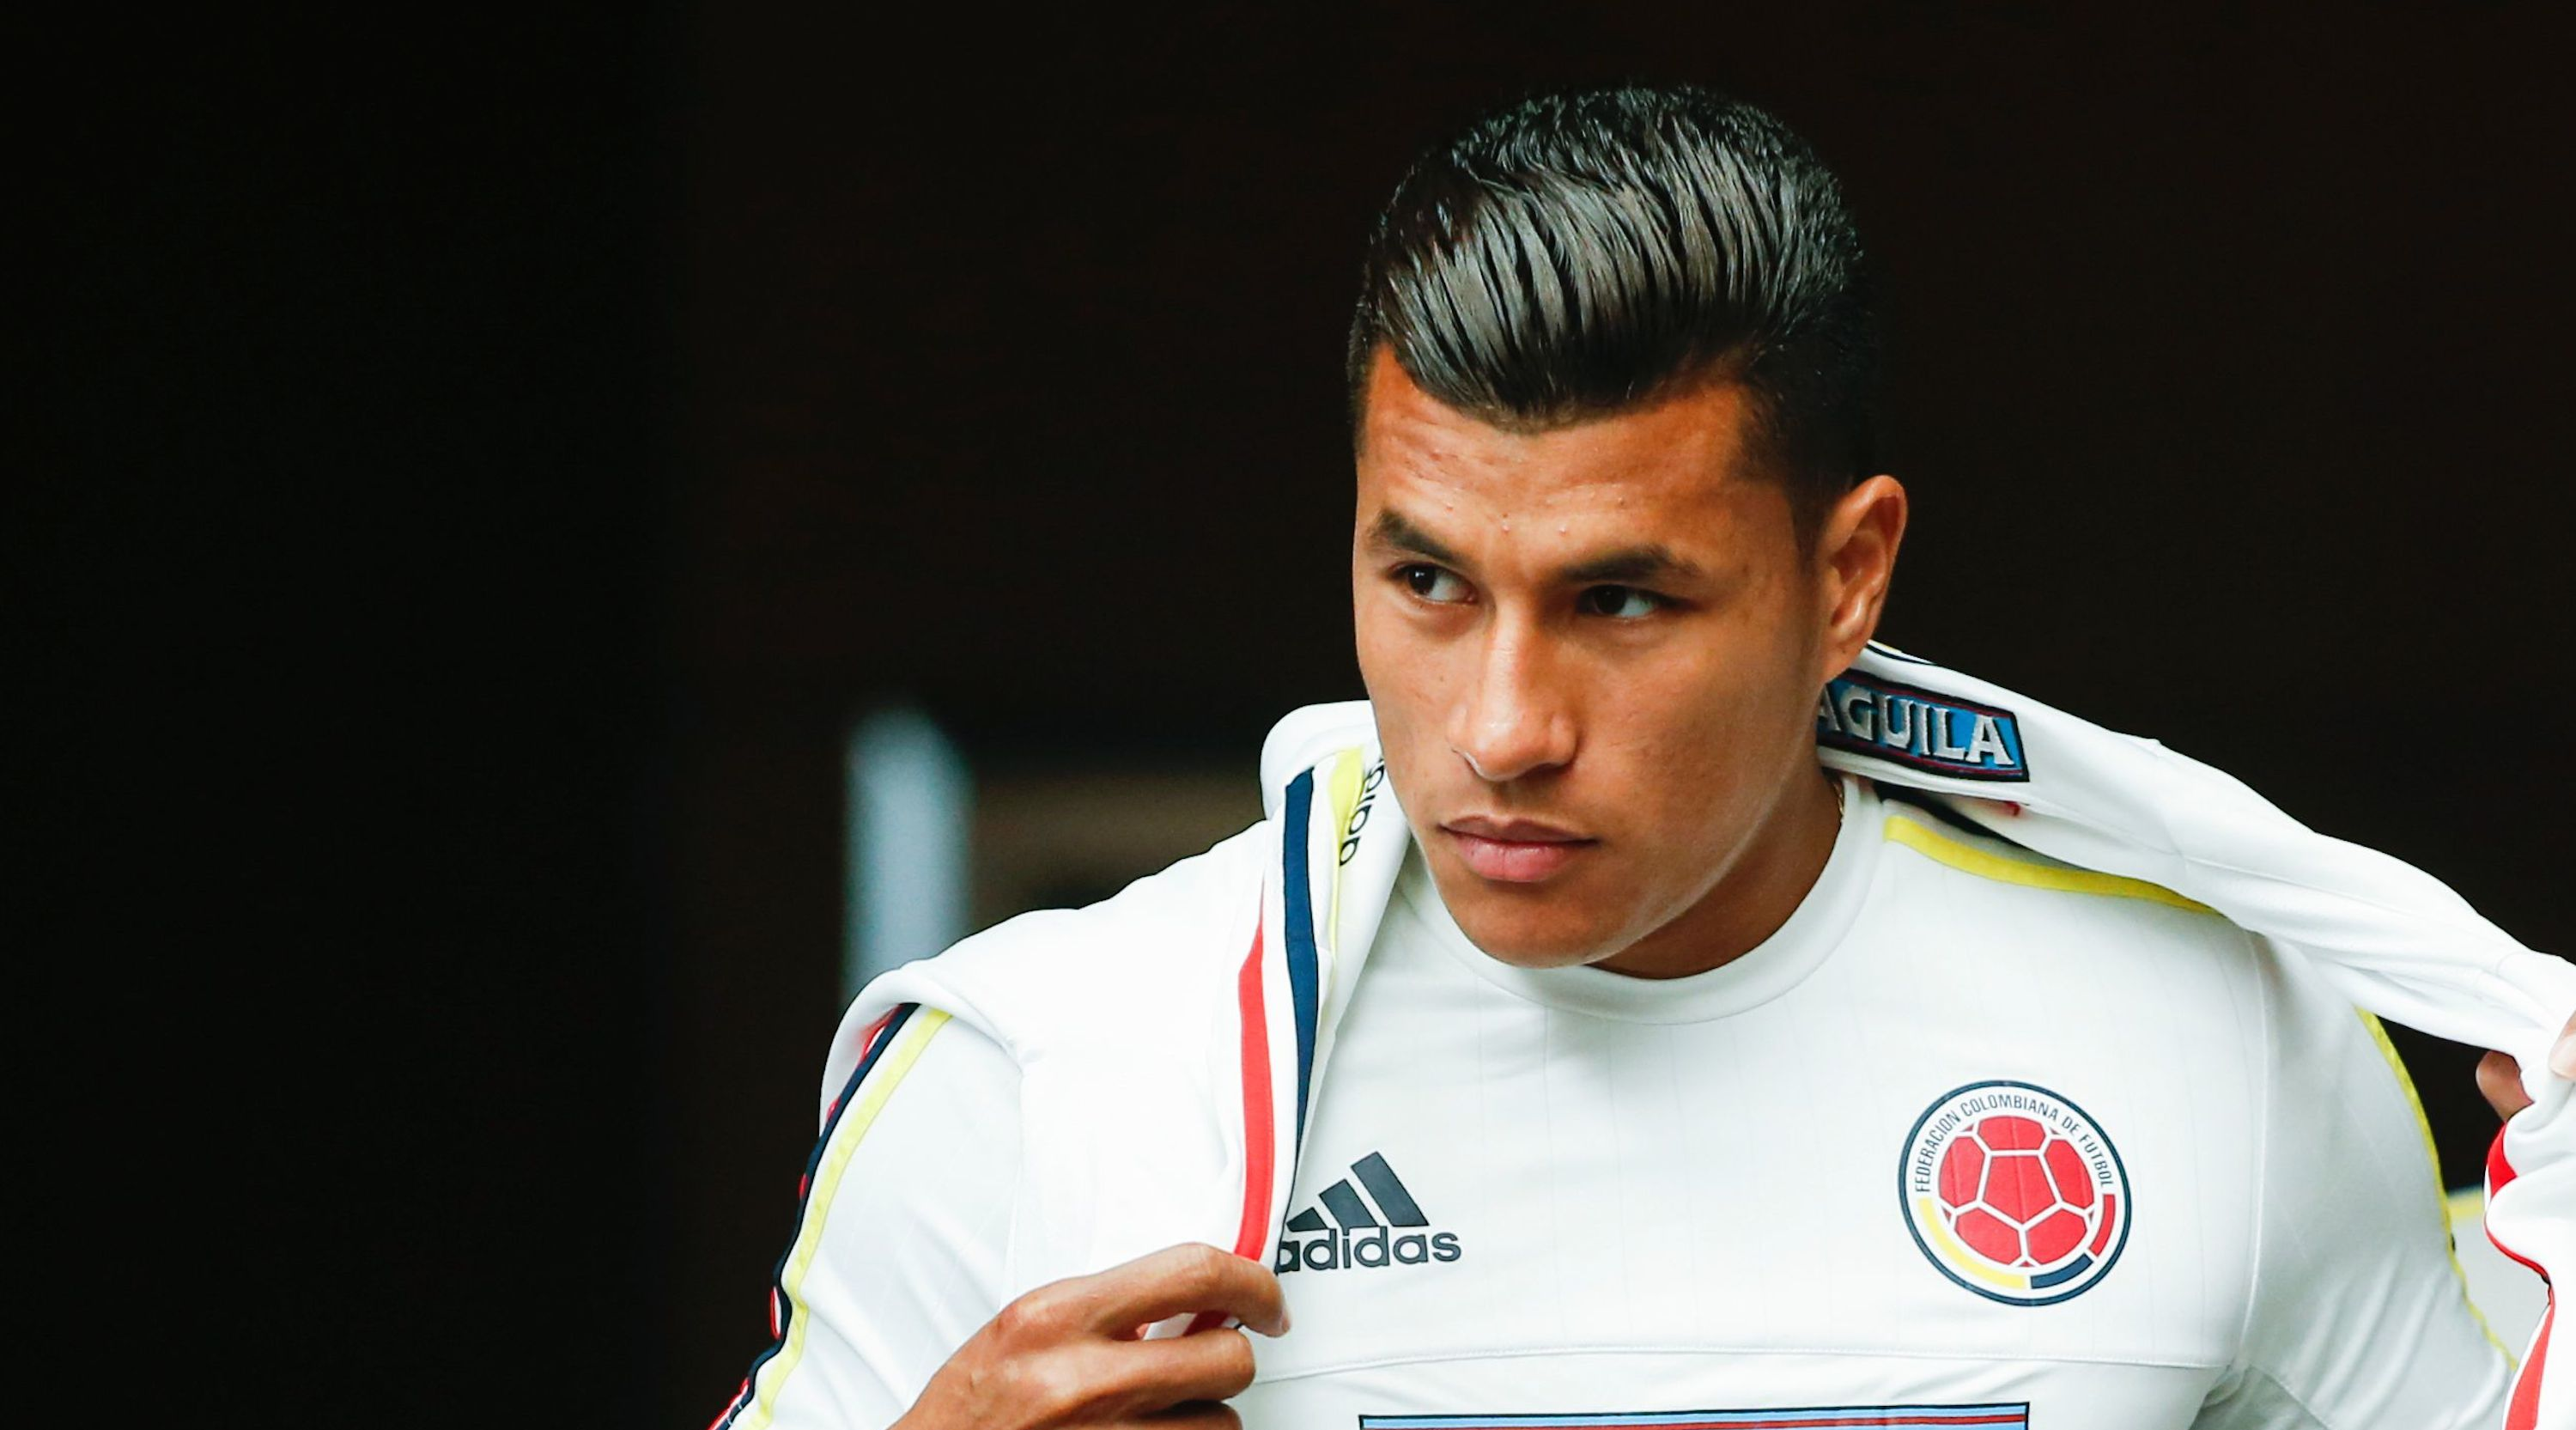 Colombia's players Jeison Murillo (L) and Sebastian Perez arrive for a press conference in Hoboken, New Jersey, on June 15, 2016. Colombia will face Peru on June 17 in their Quarter-finals match of the Copa America. / AFP / EDUARDO MUNOZ ALVAREZ (Photo credit should read EDUARDO MUNOZ ALVAREZ/AFP/Getty Images)